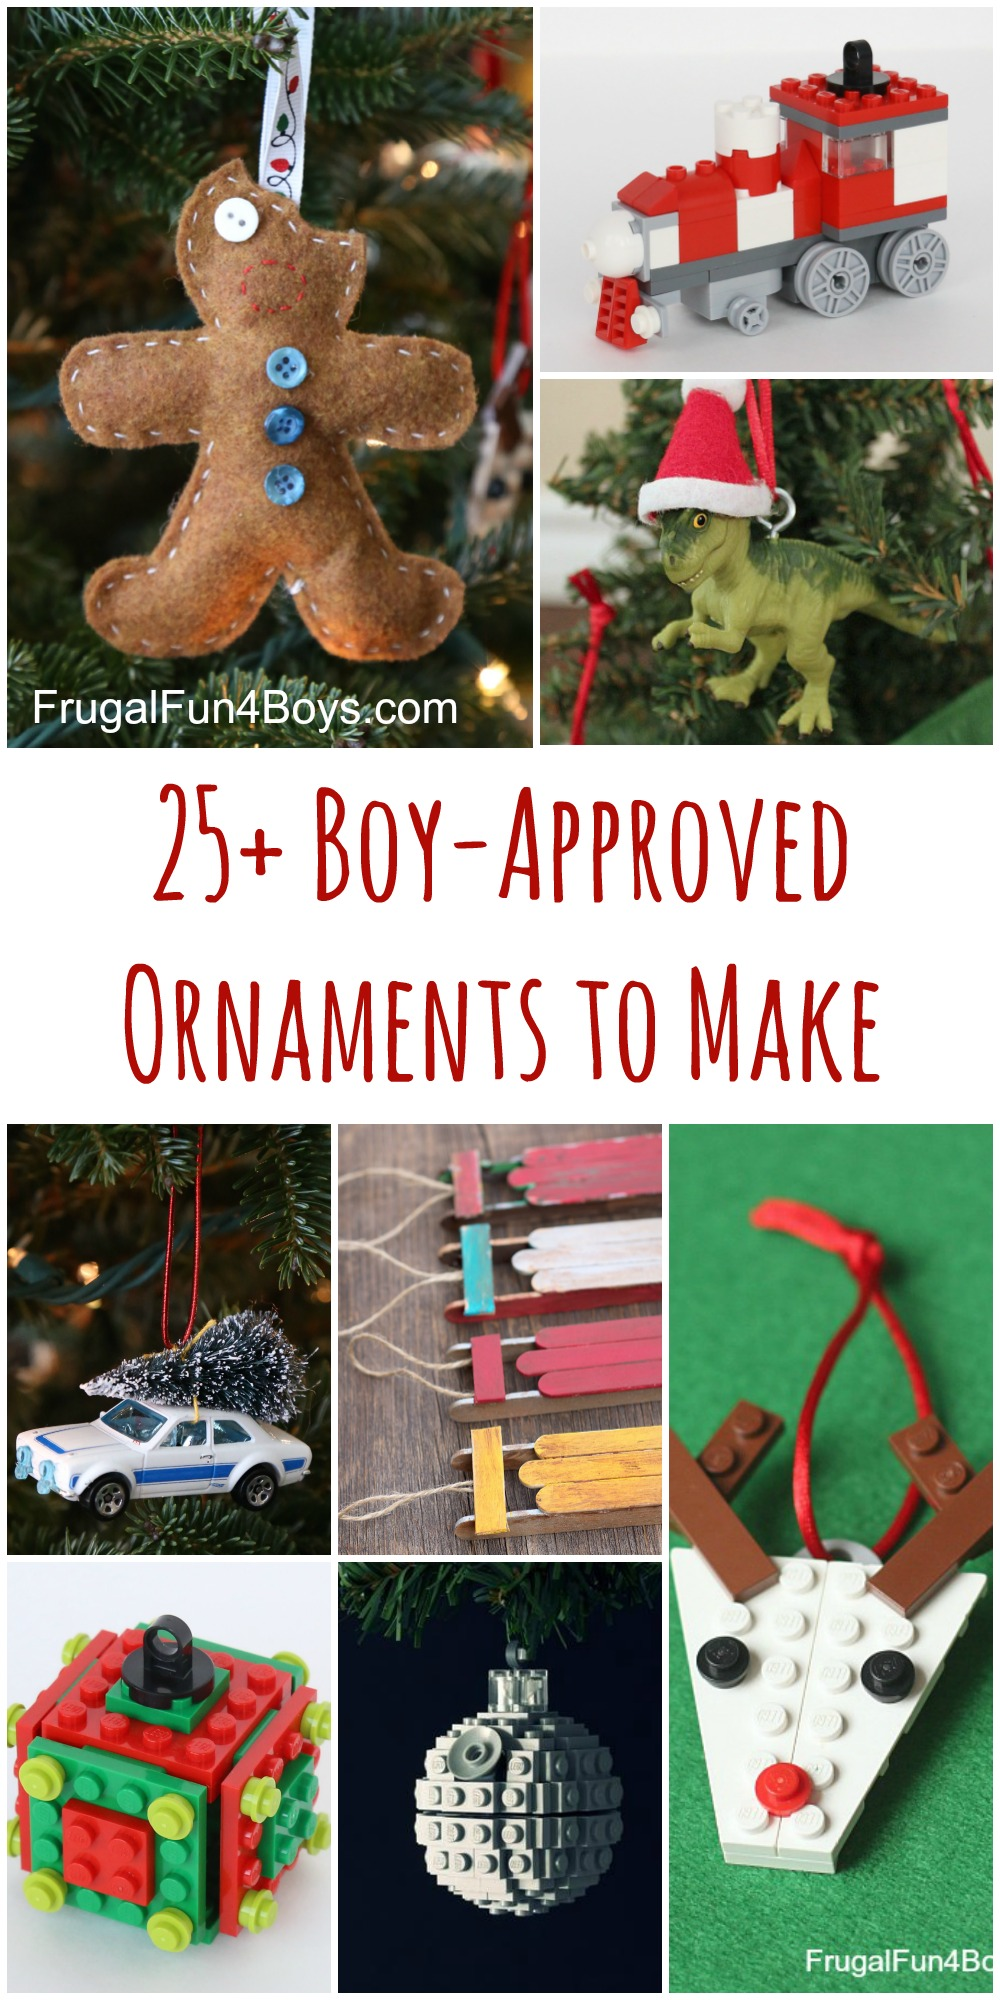 25+ Boy-Approved Ornaments to Make